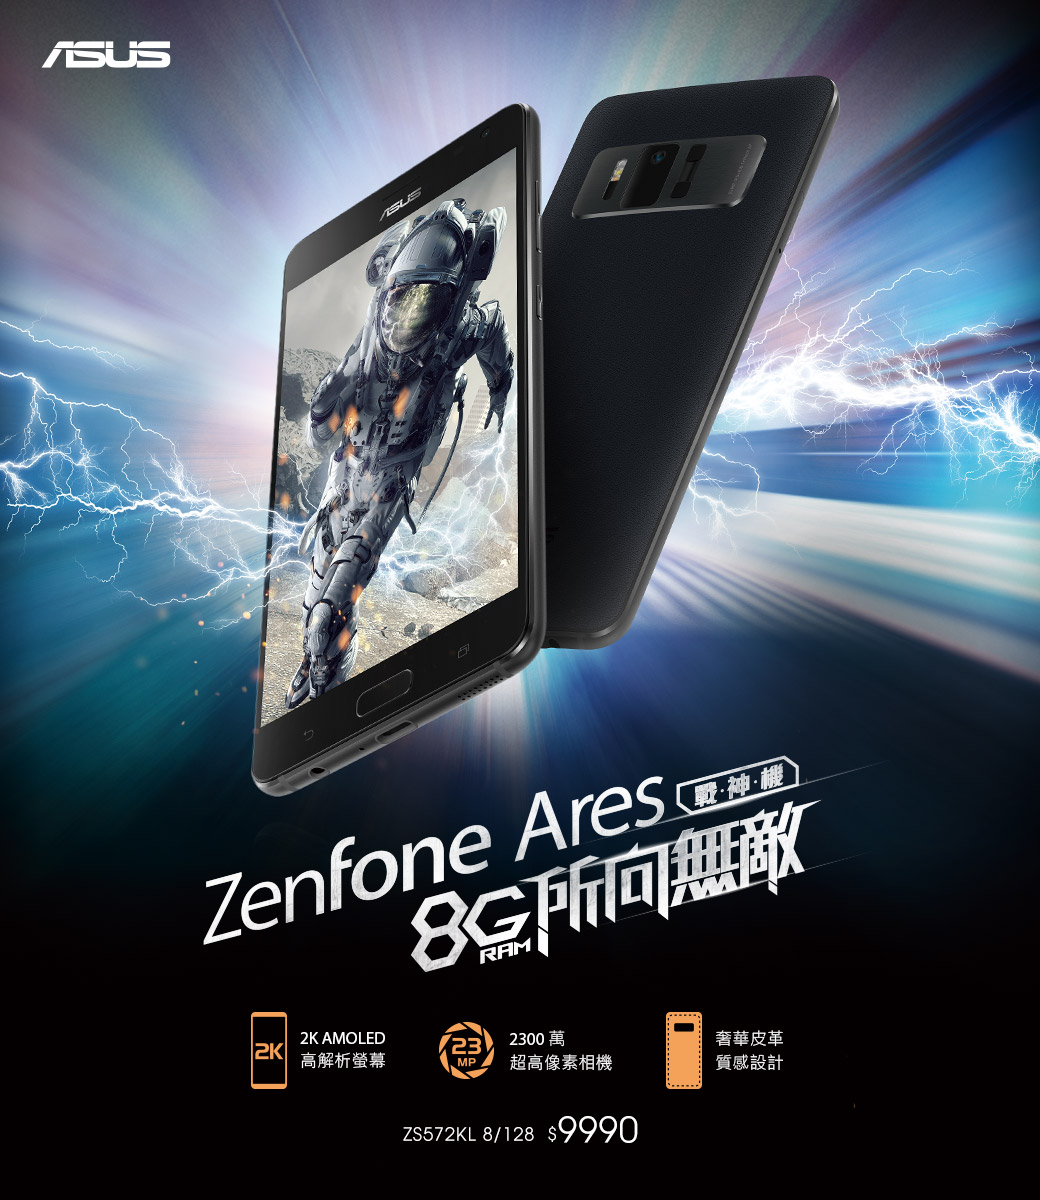 Zenfone-Ares-featured-2